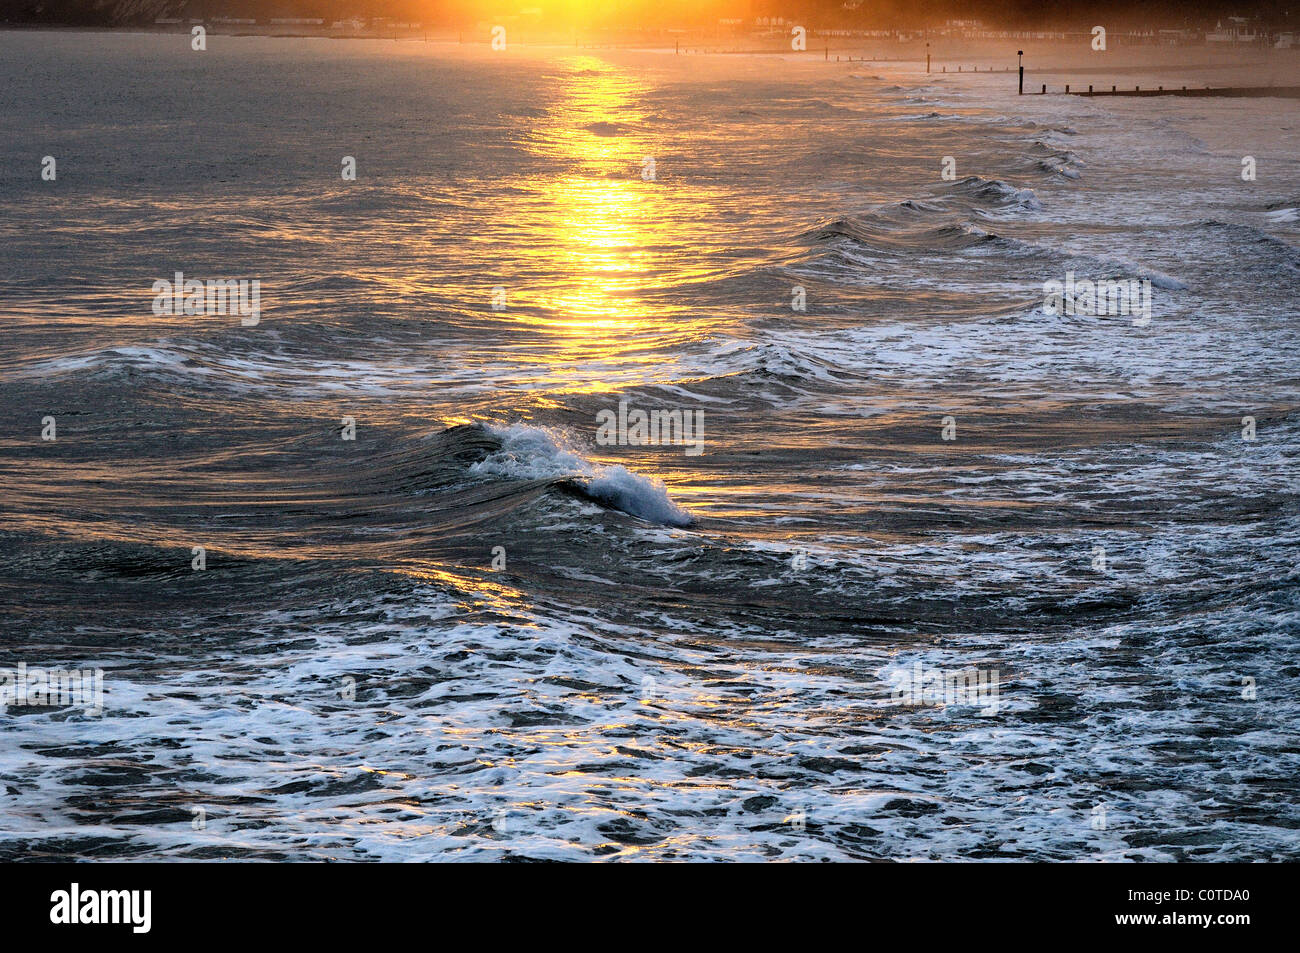 Winter sunlight on waves,Bournemouth Dorset England UK - Stock Image